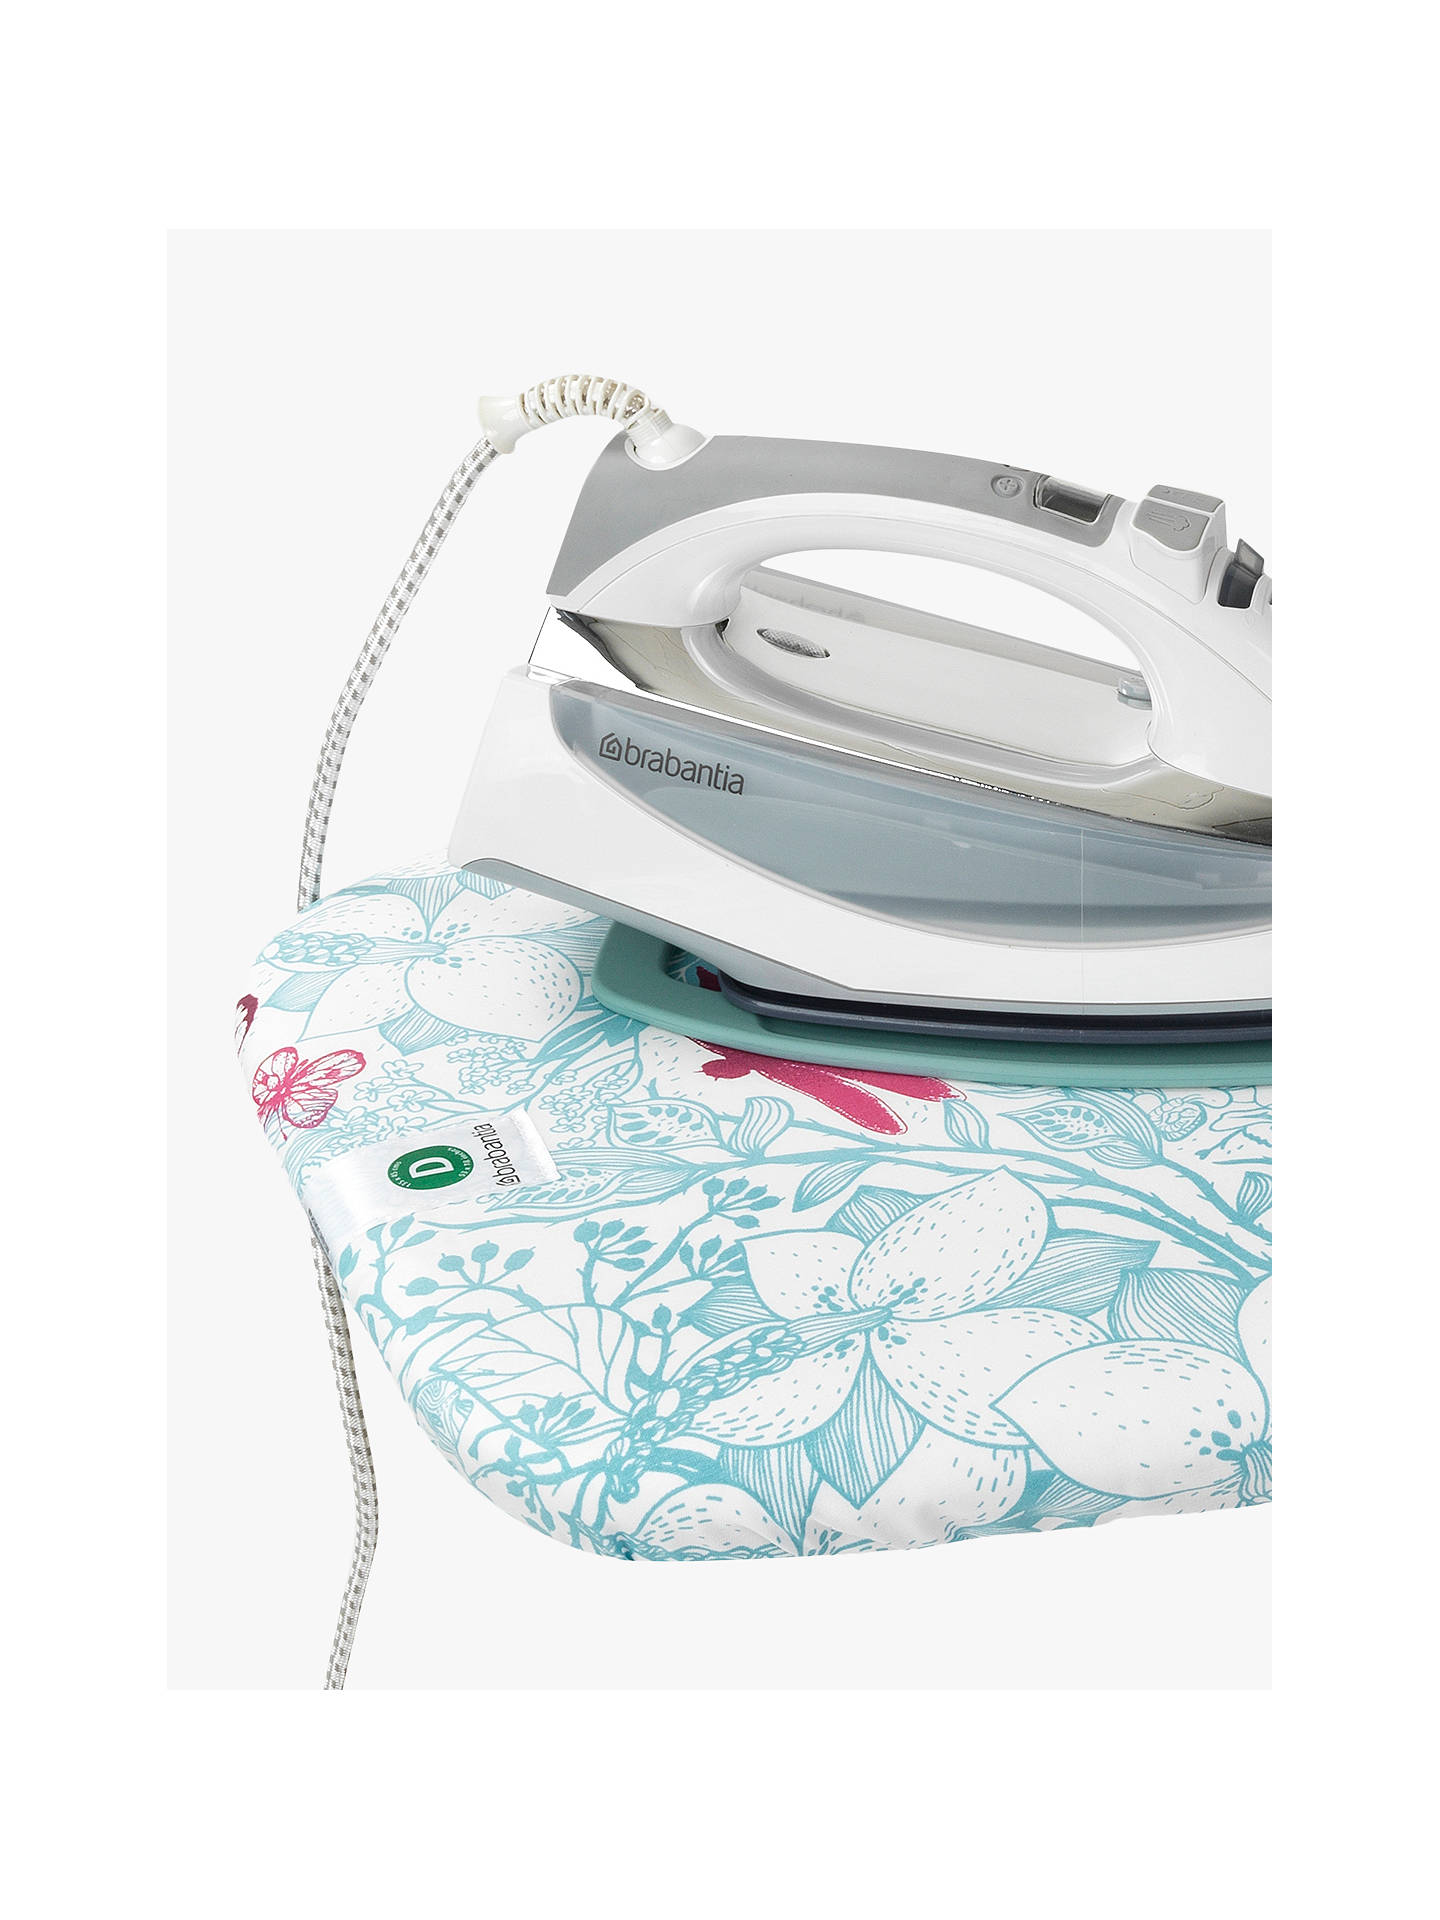 BuyBrabantia Botanical Dragonfly Ironing Board, L135 x W45cm Online at johnlewis.com